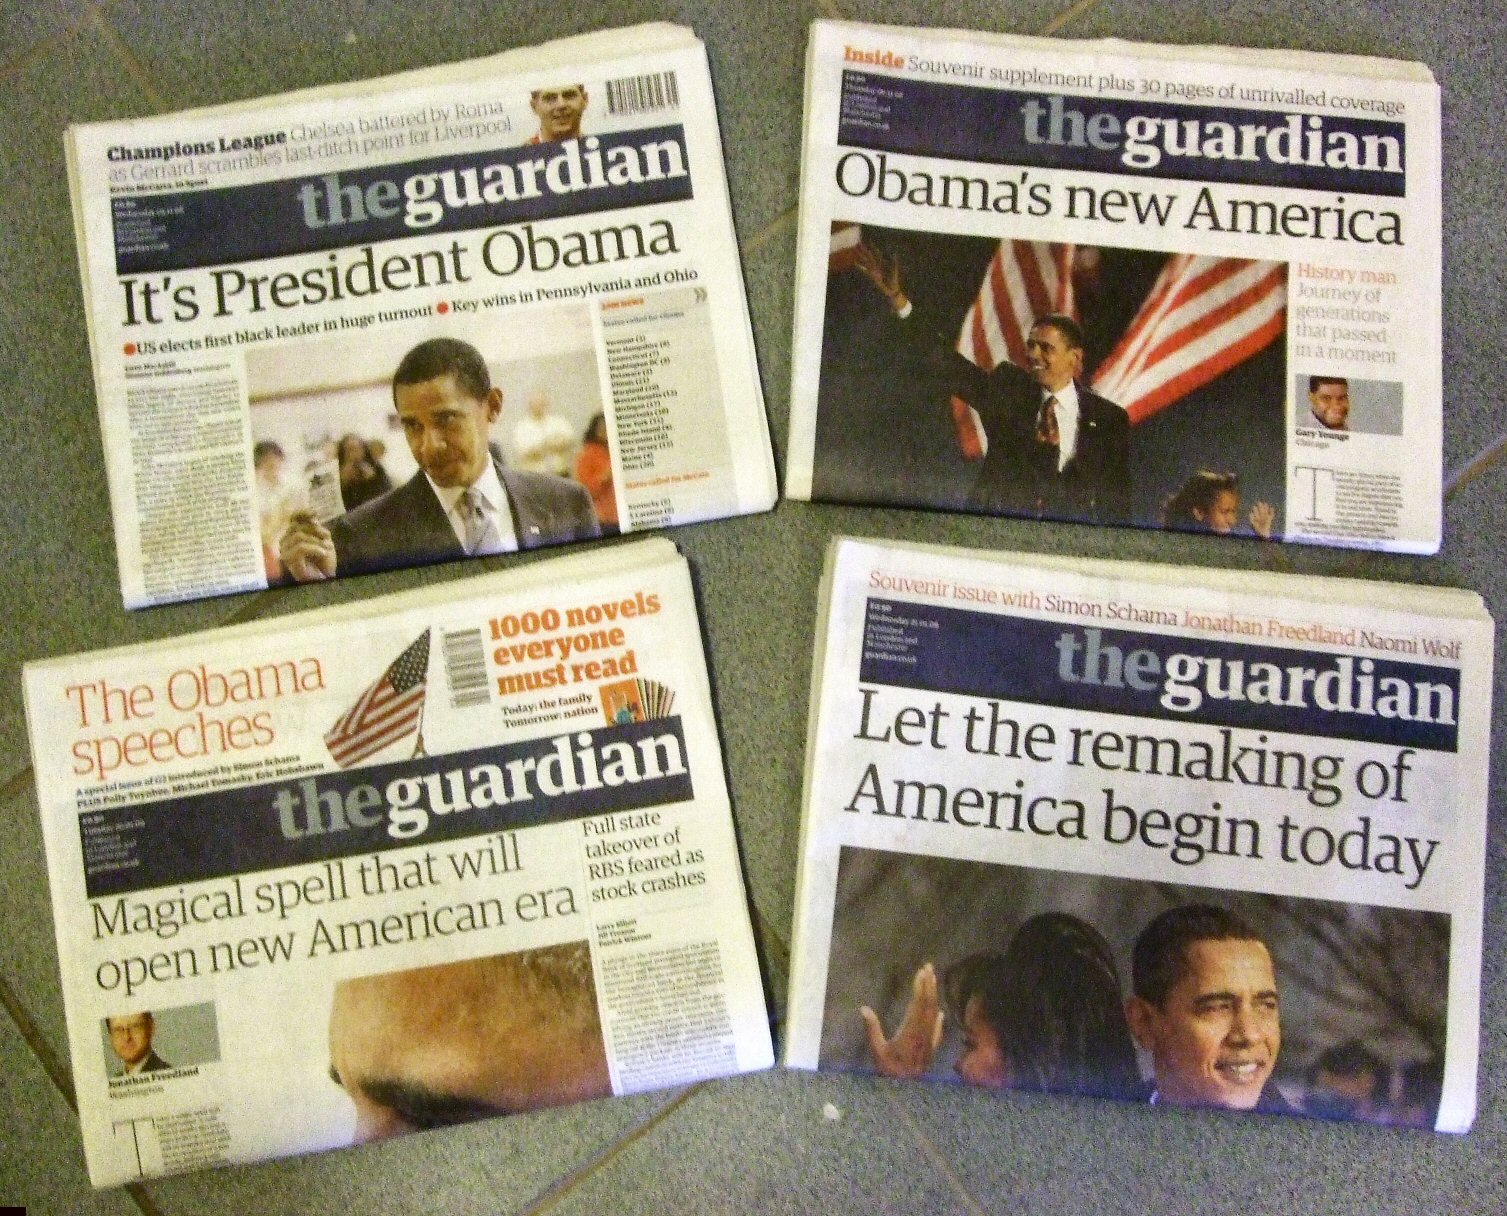 Barack Obama headlines from The Guardian